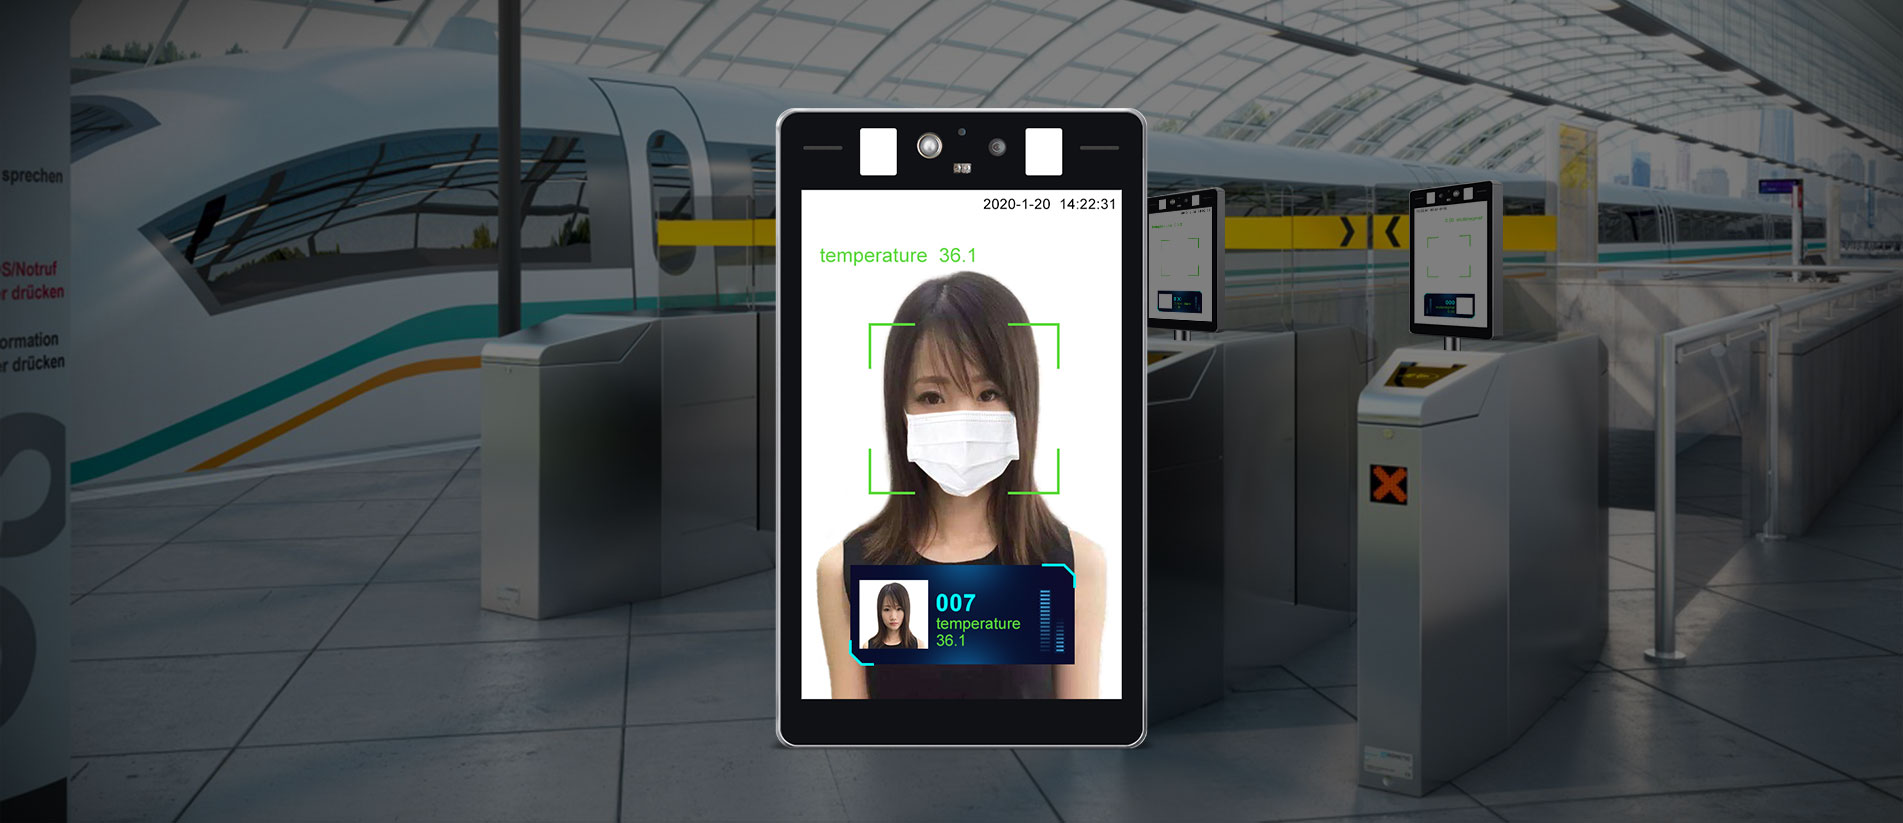 Body Temperature Kiosk with Face Recognition 1